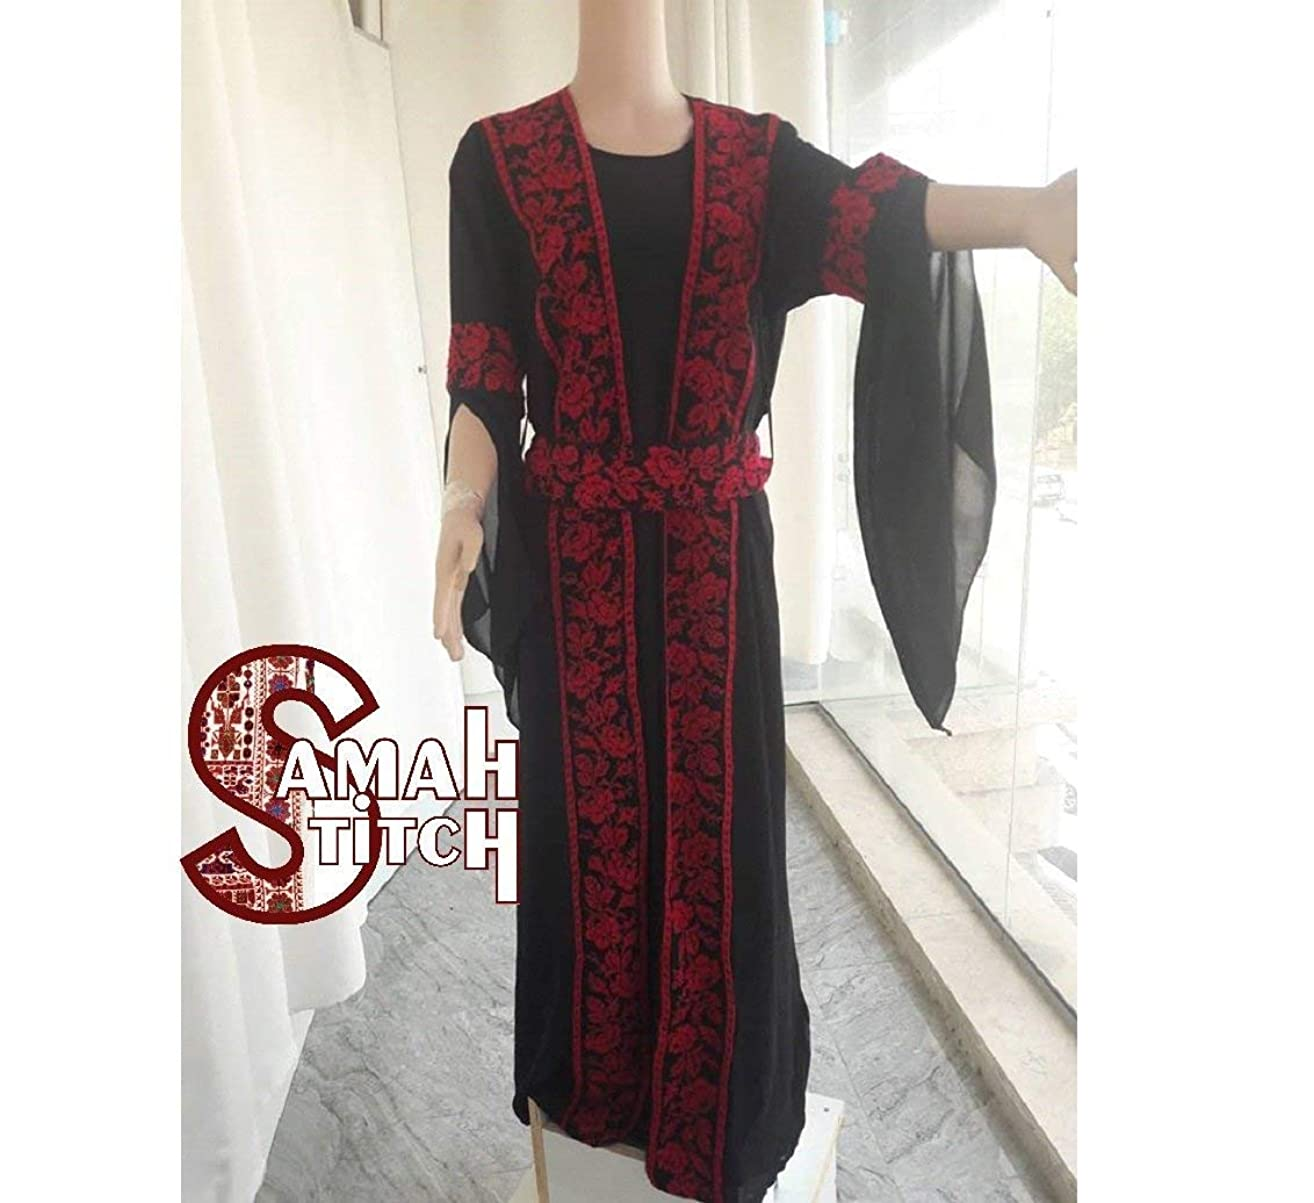 2019 Hand Made Embroidered Black Chiffon Dress with Belt, Unique design, new Abaya style - Palestinian Embroidery, DMC Thread High Quality